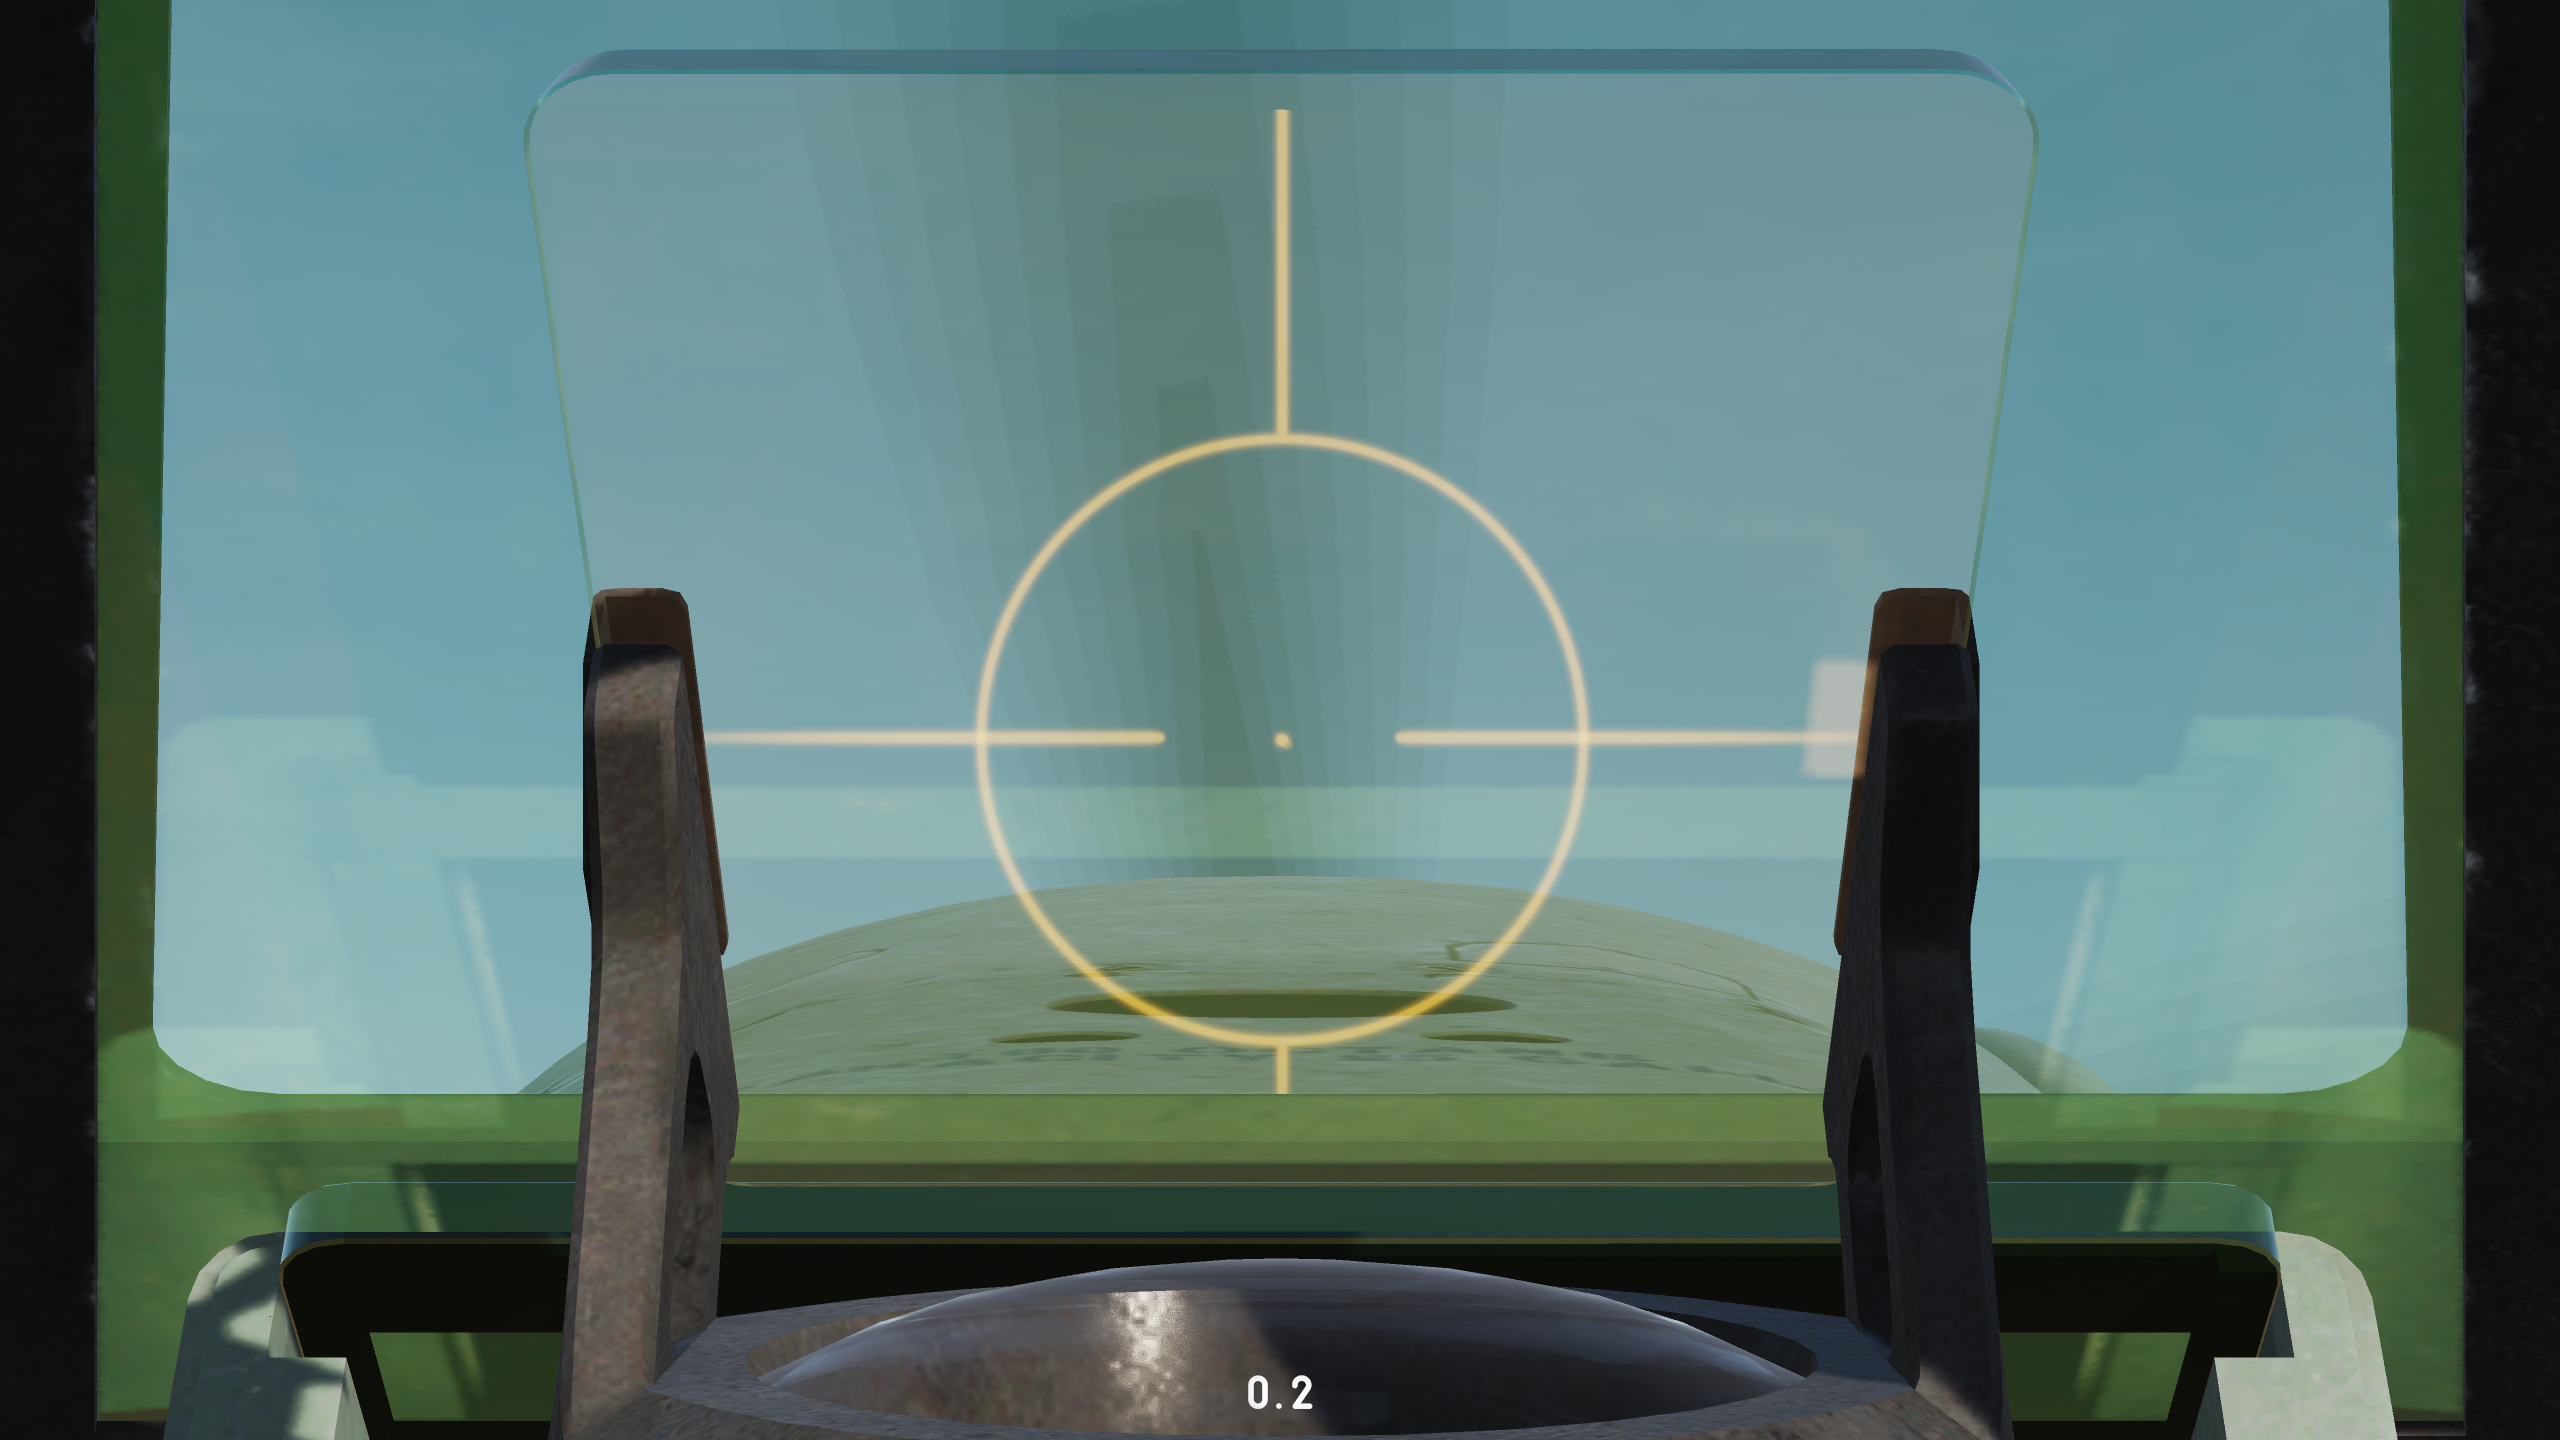 Spitfire Gunsight Reticle v0.2